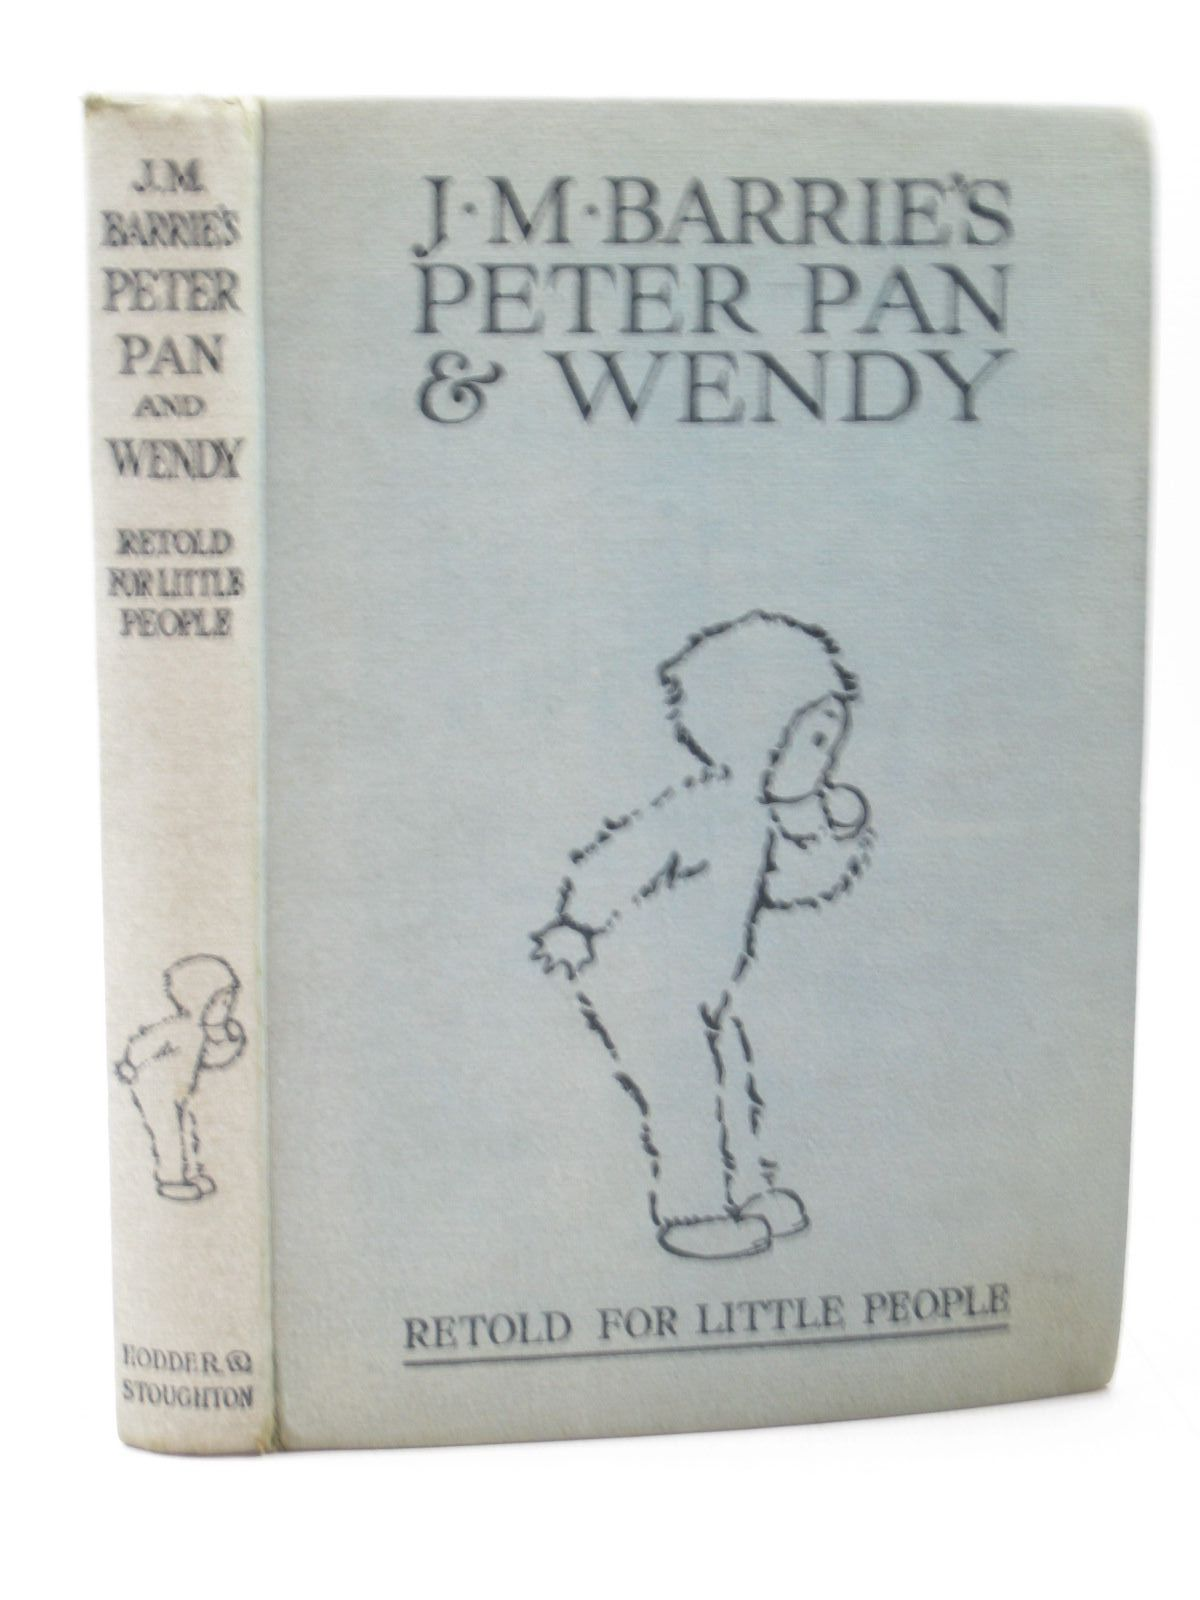 J.M. BARRIE'S PETER PAN & WENDY. by J.M. Barrie; May Byron. Illustrated by Mabel  Lucie Attwell